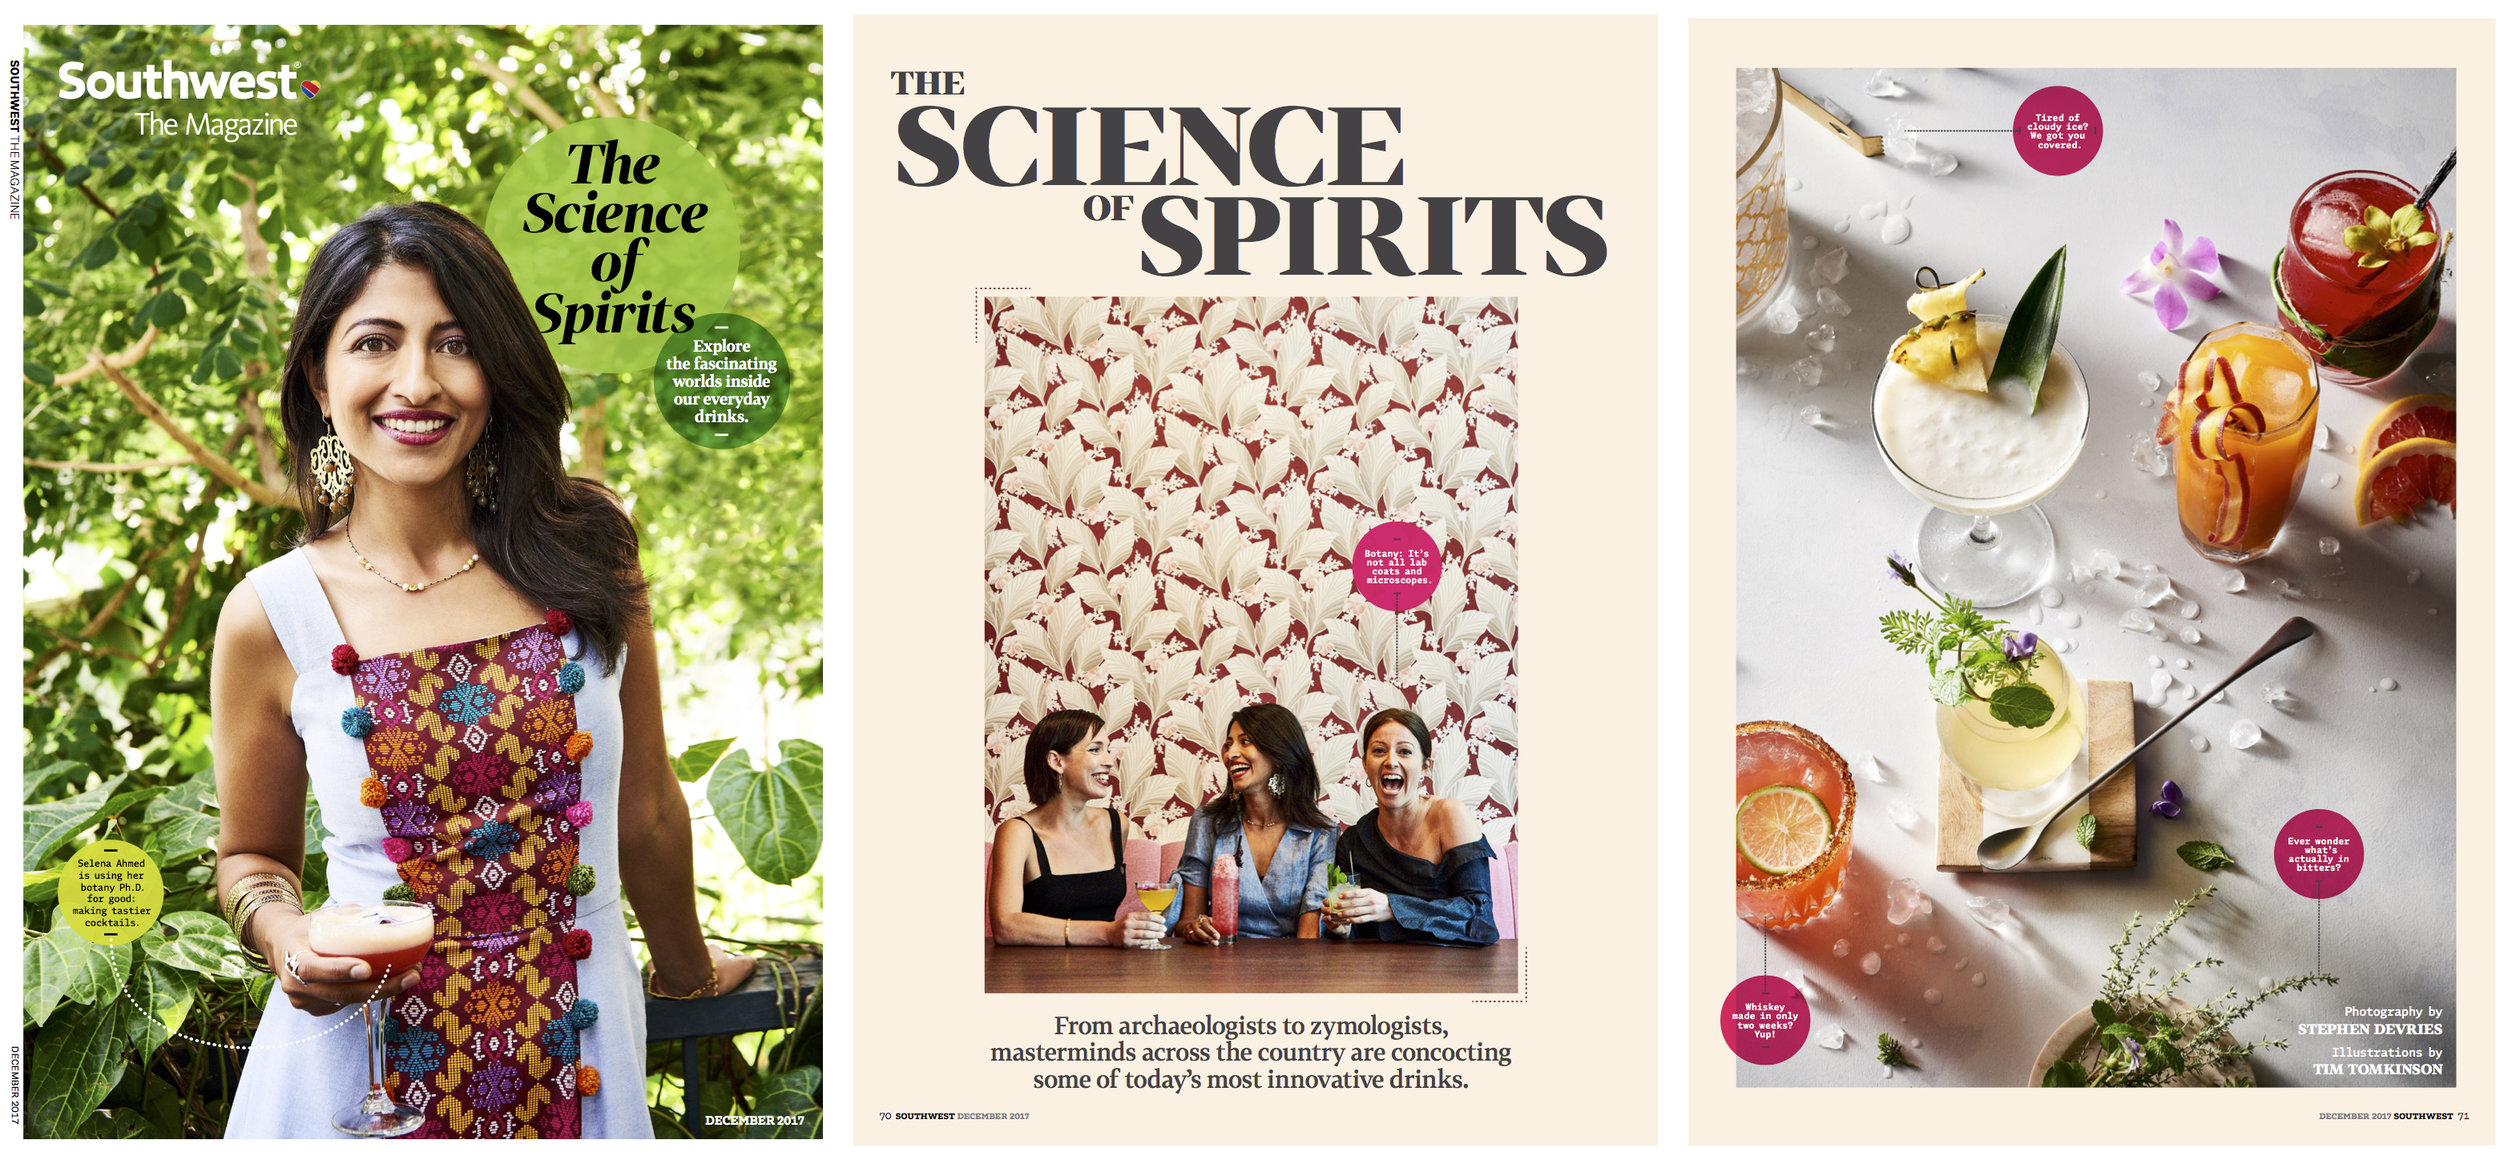 Shoots & Roots featured as the December 2017 cover story in the inflight magazine of Southwest Airlines.